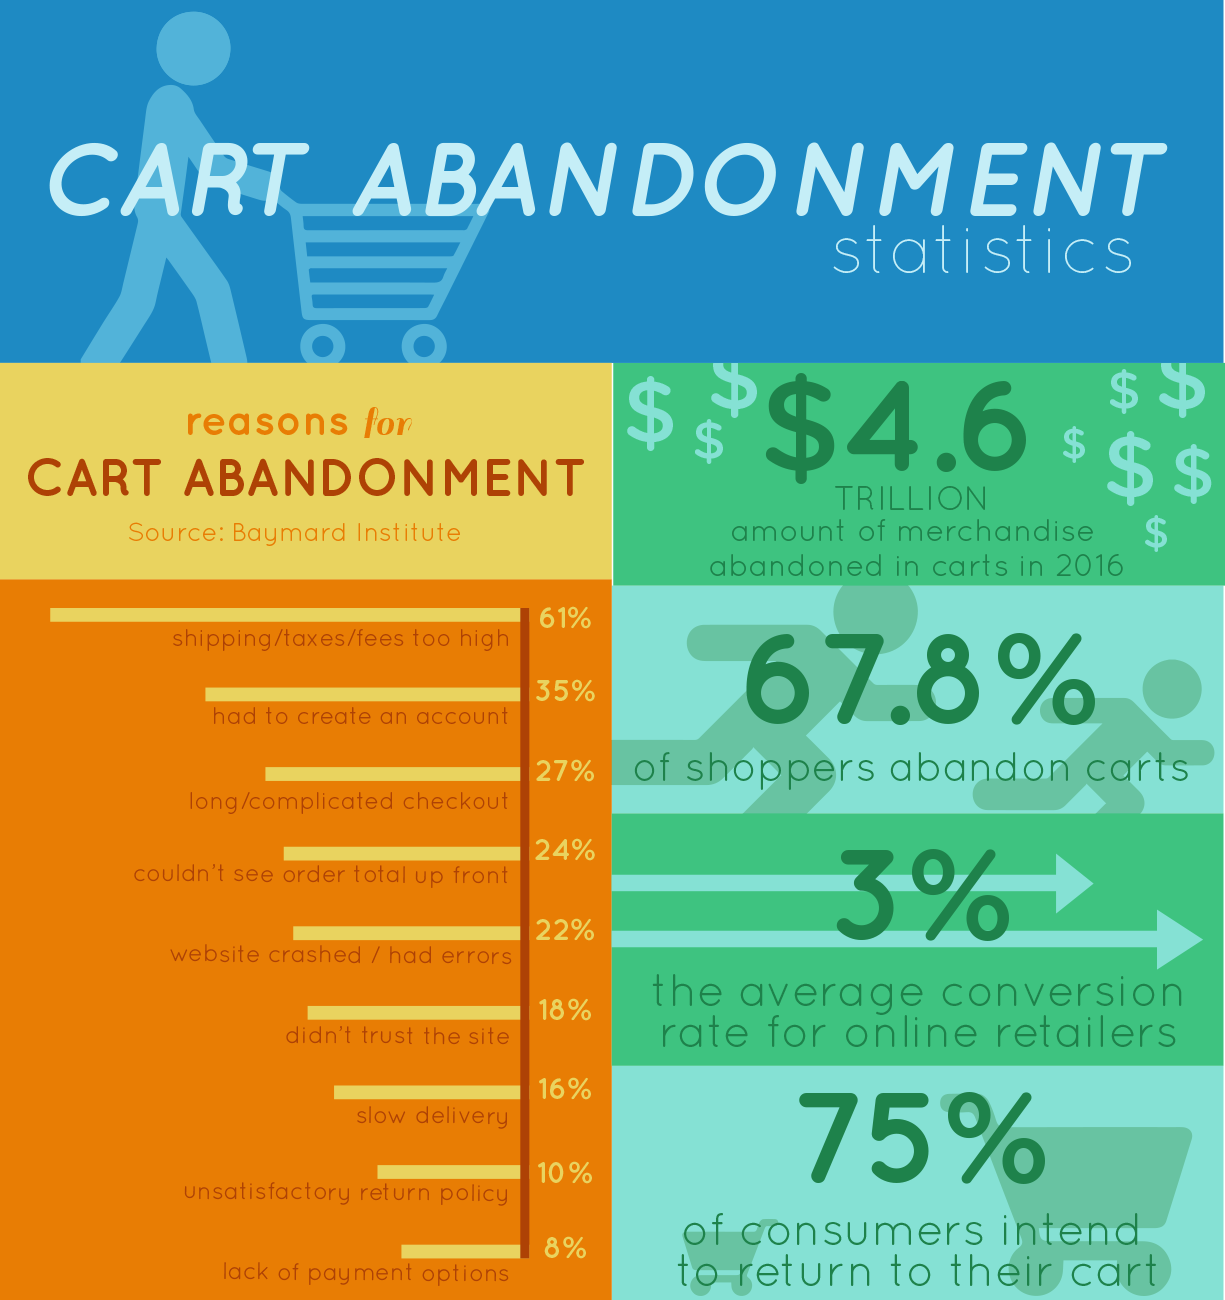 Cart Abandonment Statistics Infographic